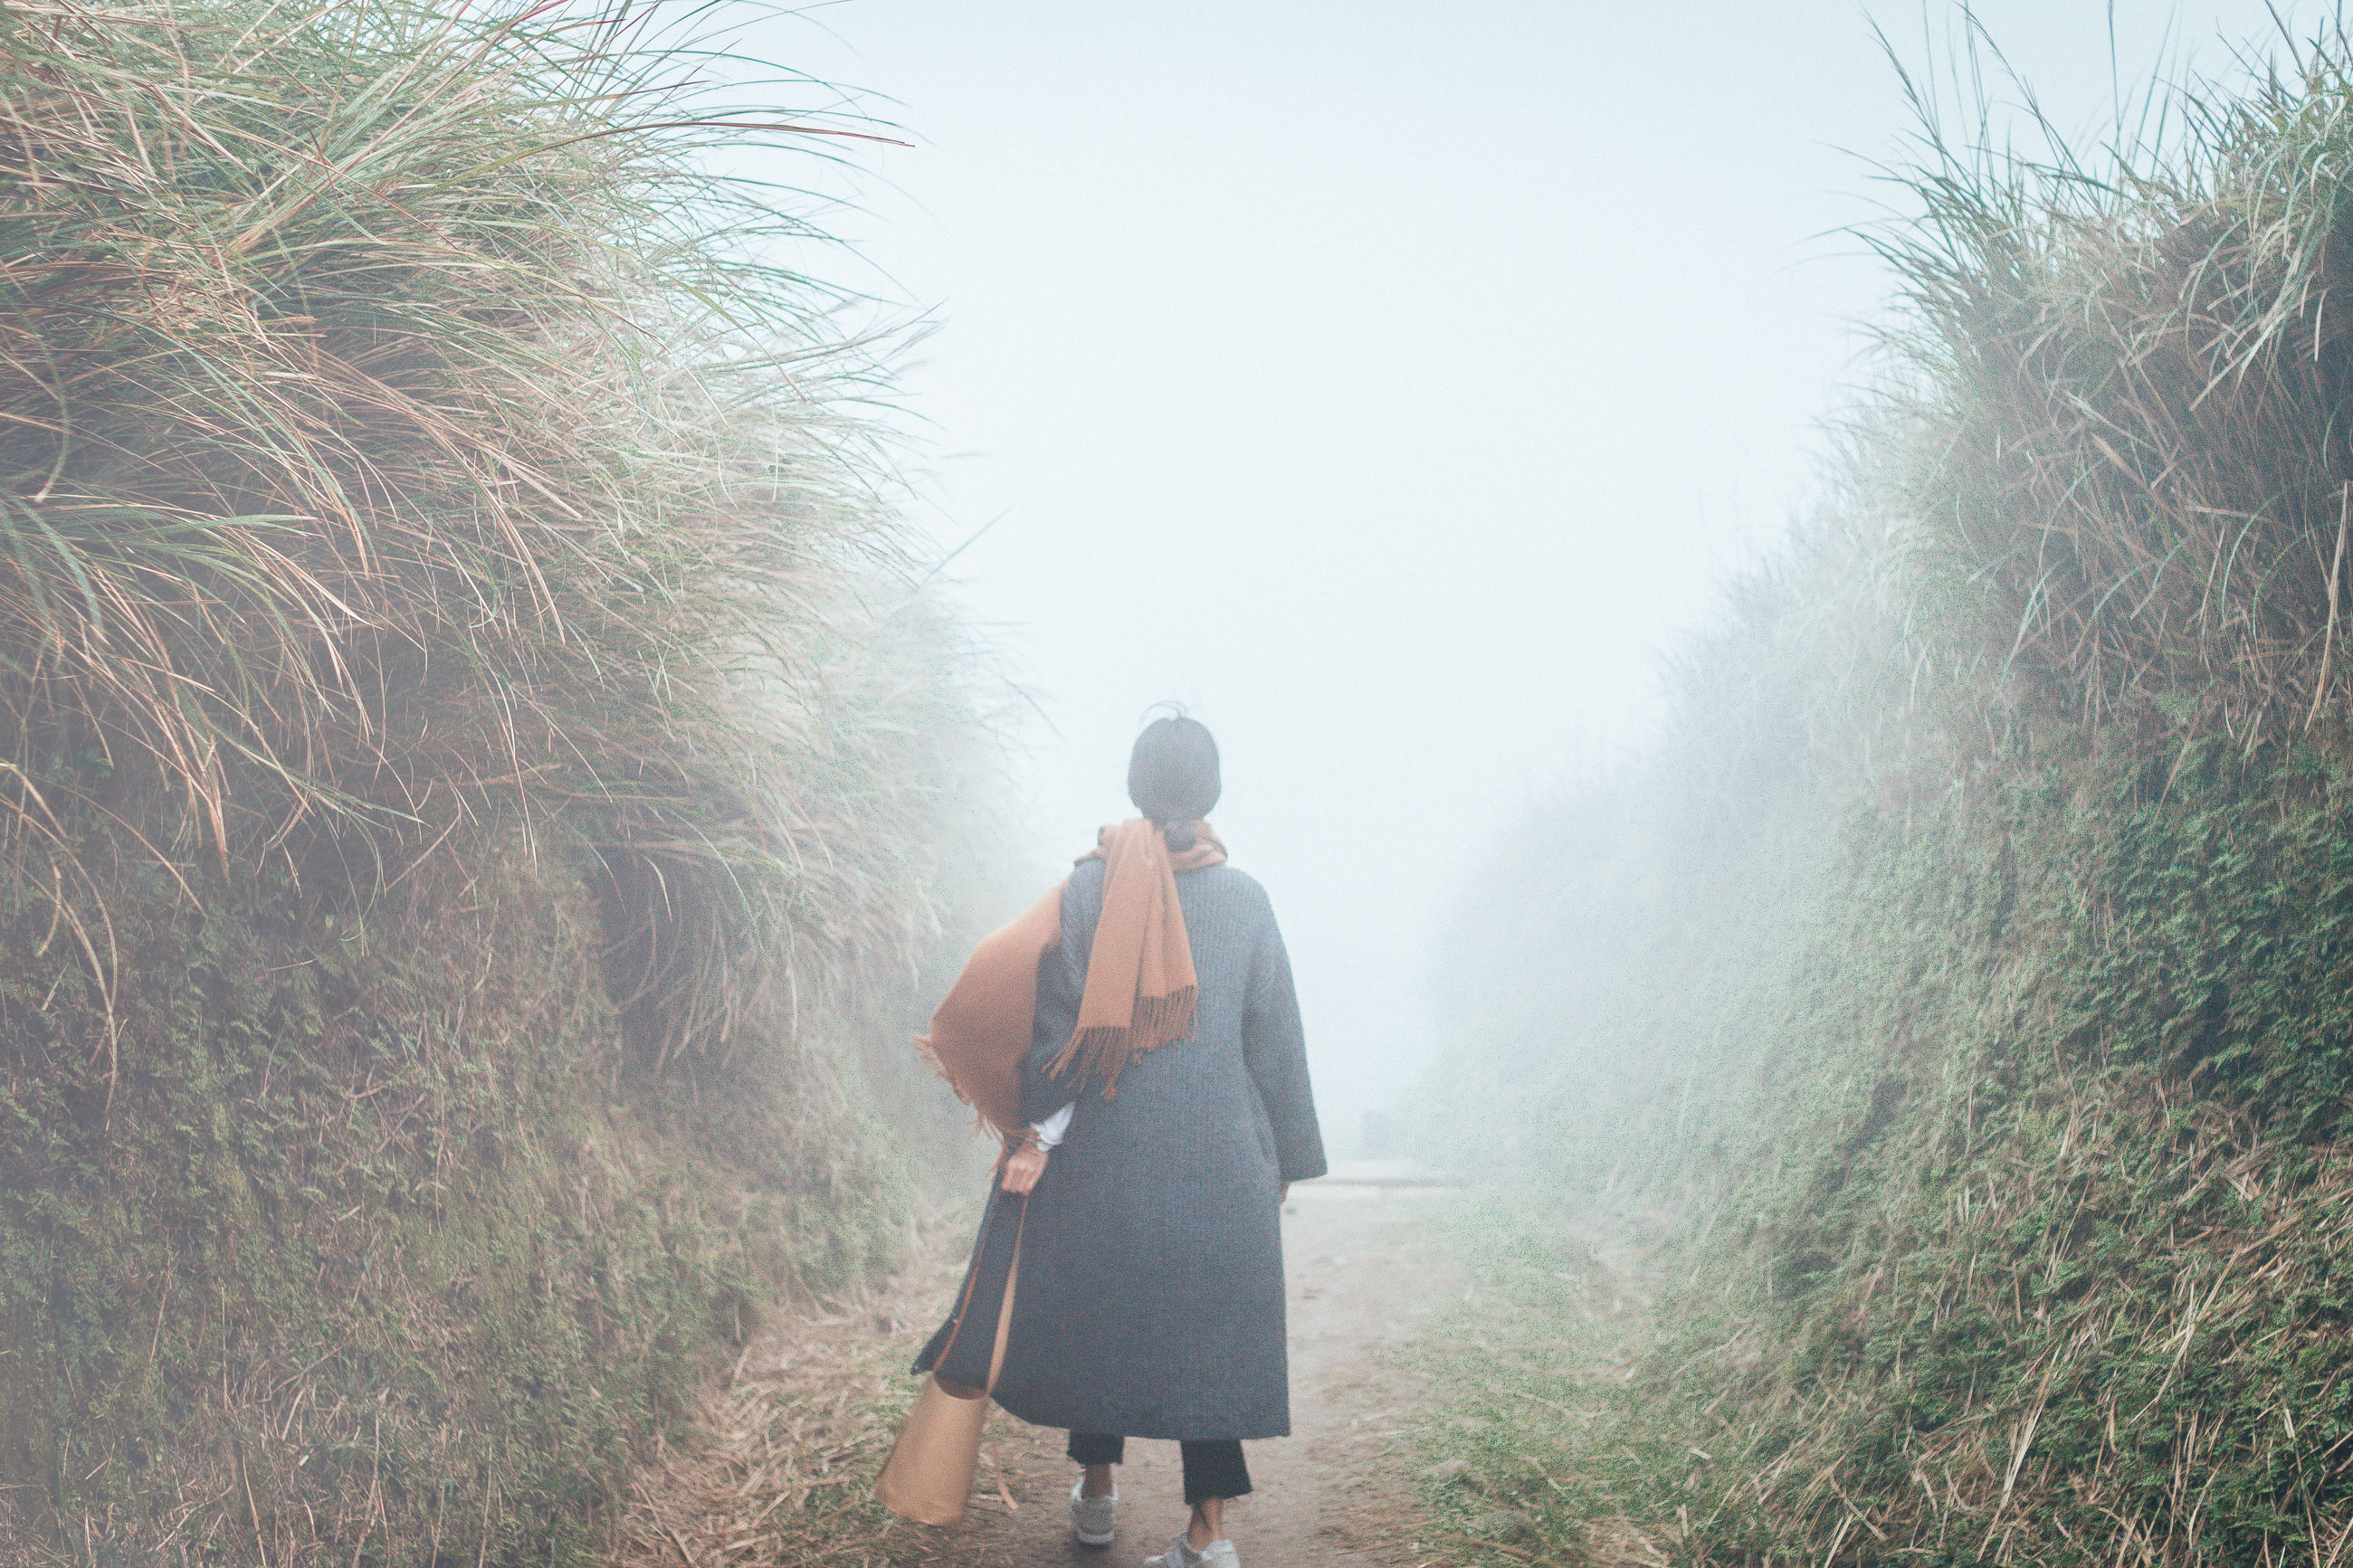 plant, one person, three quarter length, real people, nature, lifestyles, standing, leisure activity, walking, casual clothing, growth, rear view, grass, land, day, tree, beauty in nature, fog, sky, outdoors